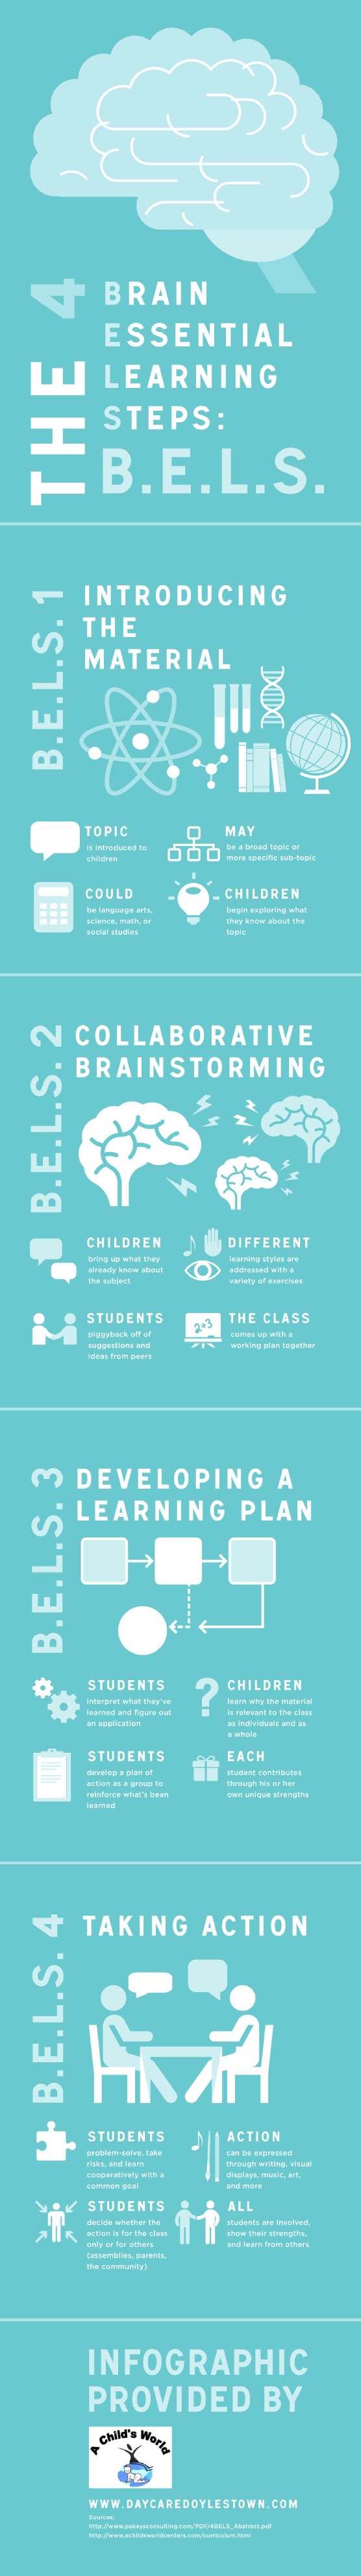 The 4 brain essential learning steps